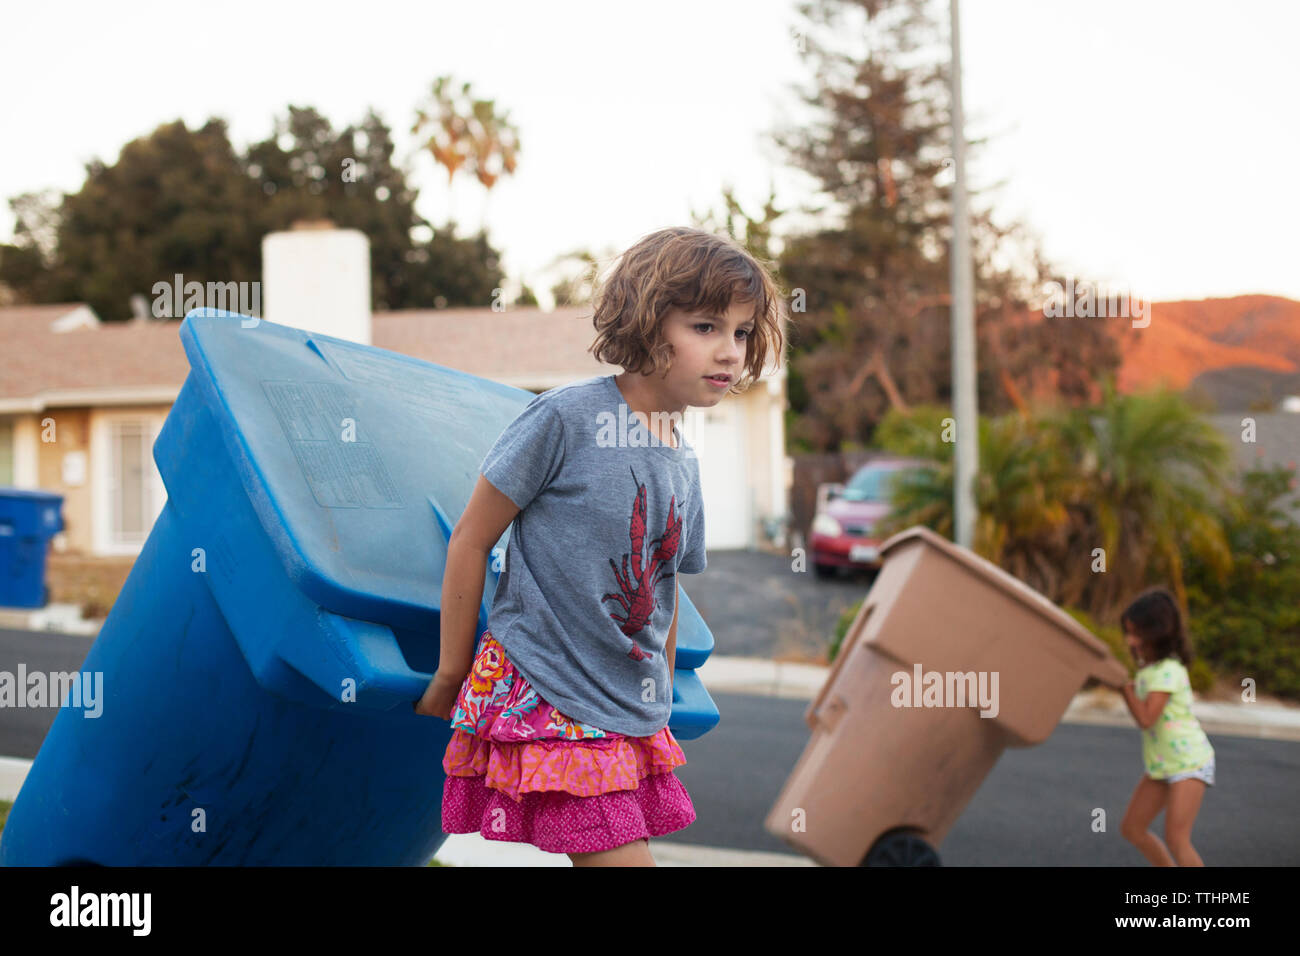 Girl pulling garbage can while walking on road - Stock Image